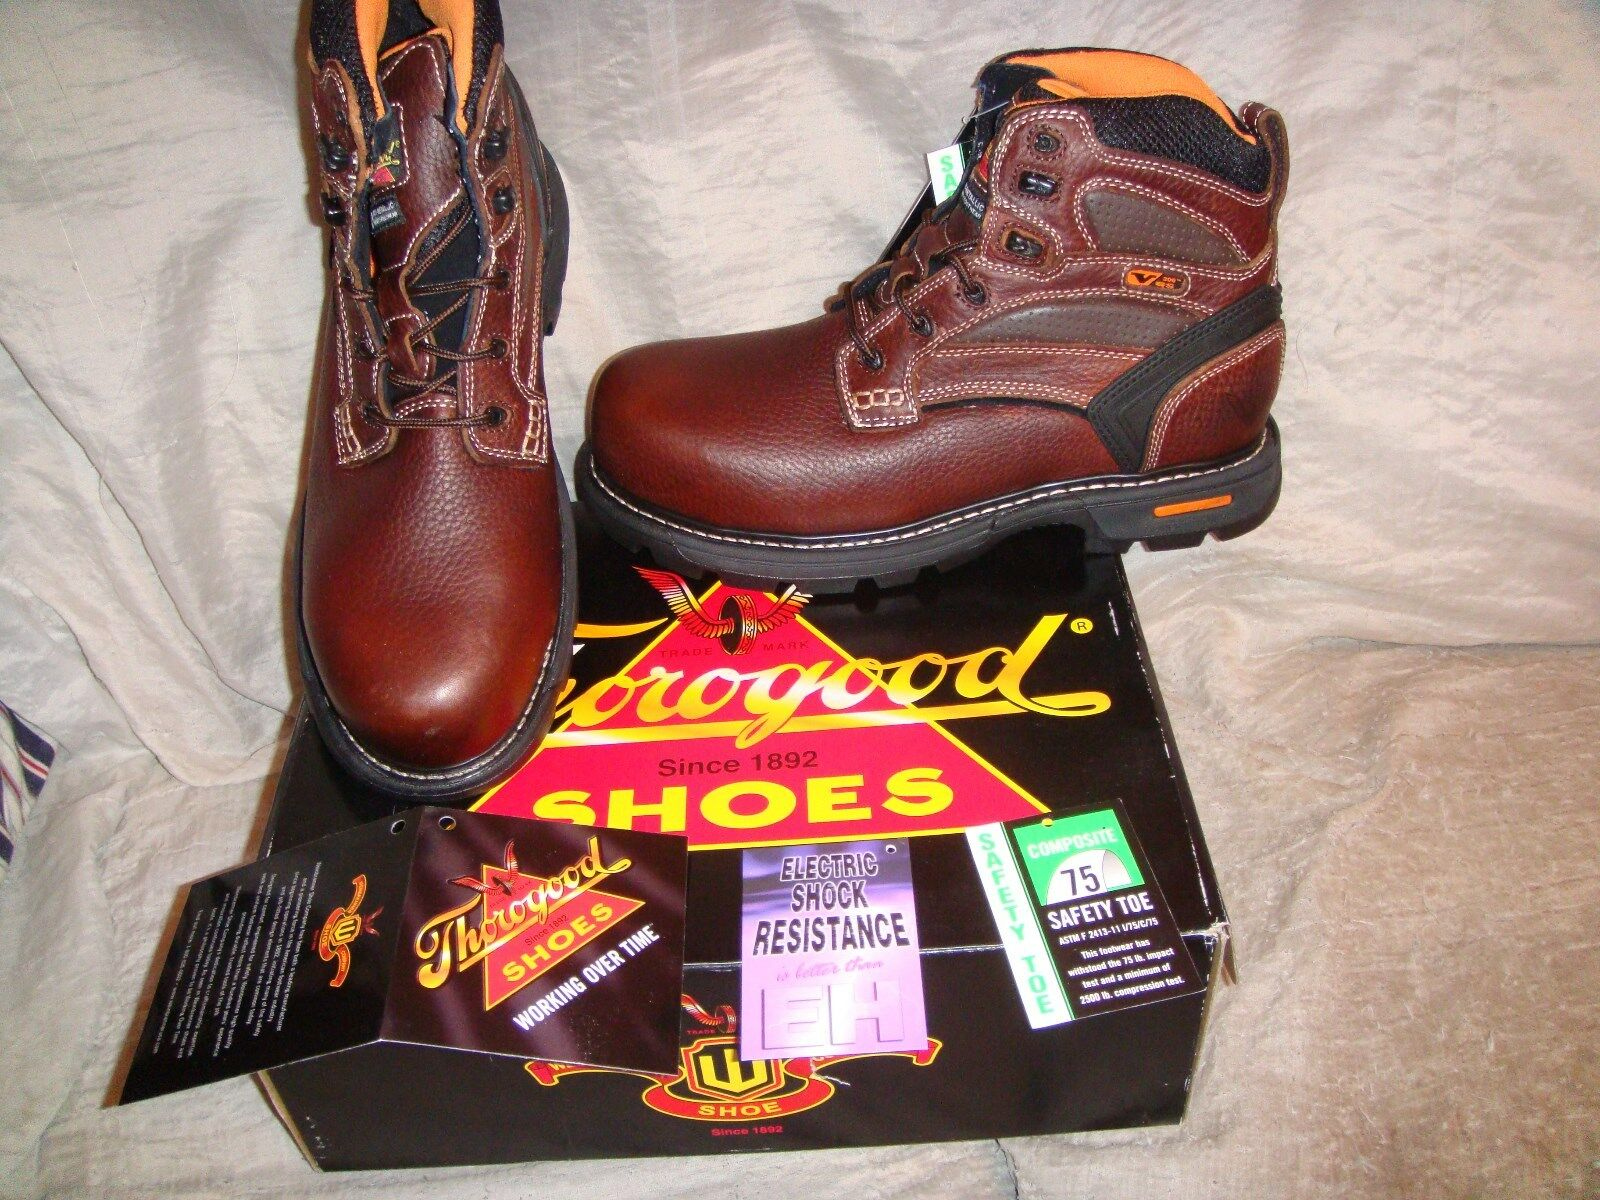 Thgoldgood 6  Plain Safety Toe Boots Man 804-4446 Brown Tumbled Leather 11.5 NIB